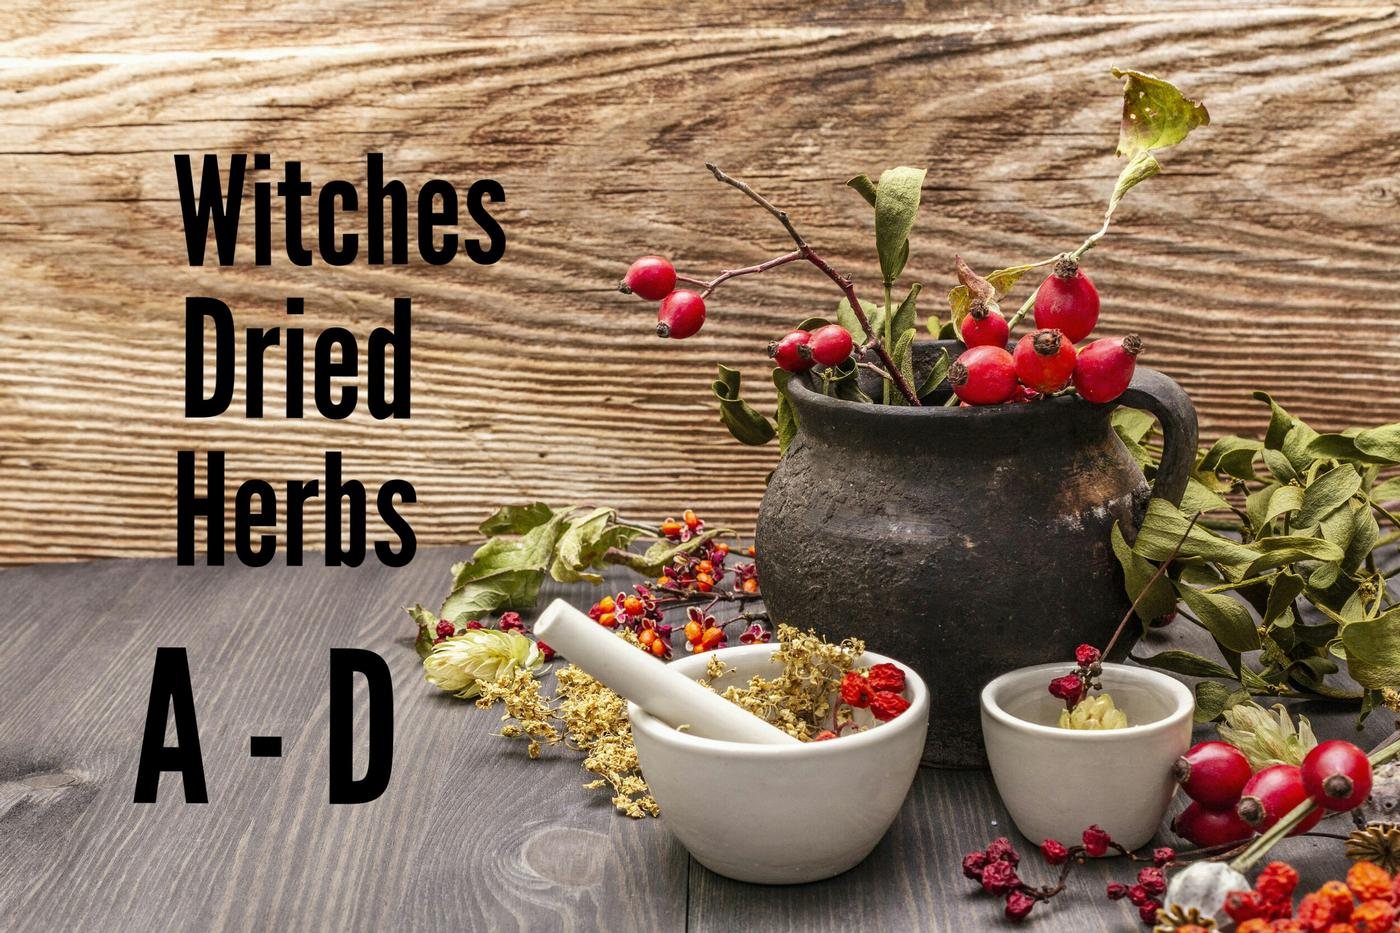 Witches Herbs   A - D